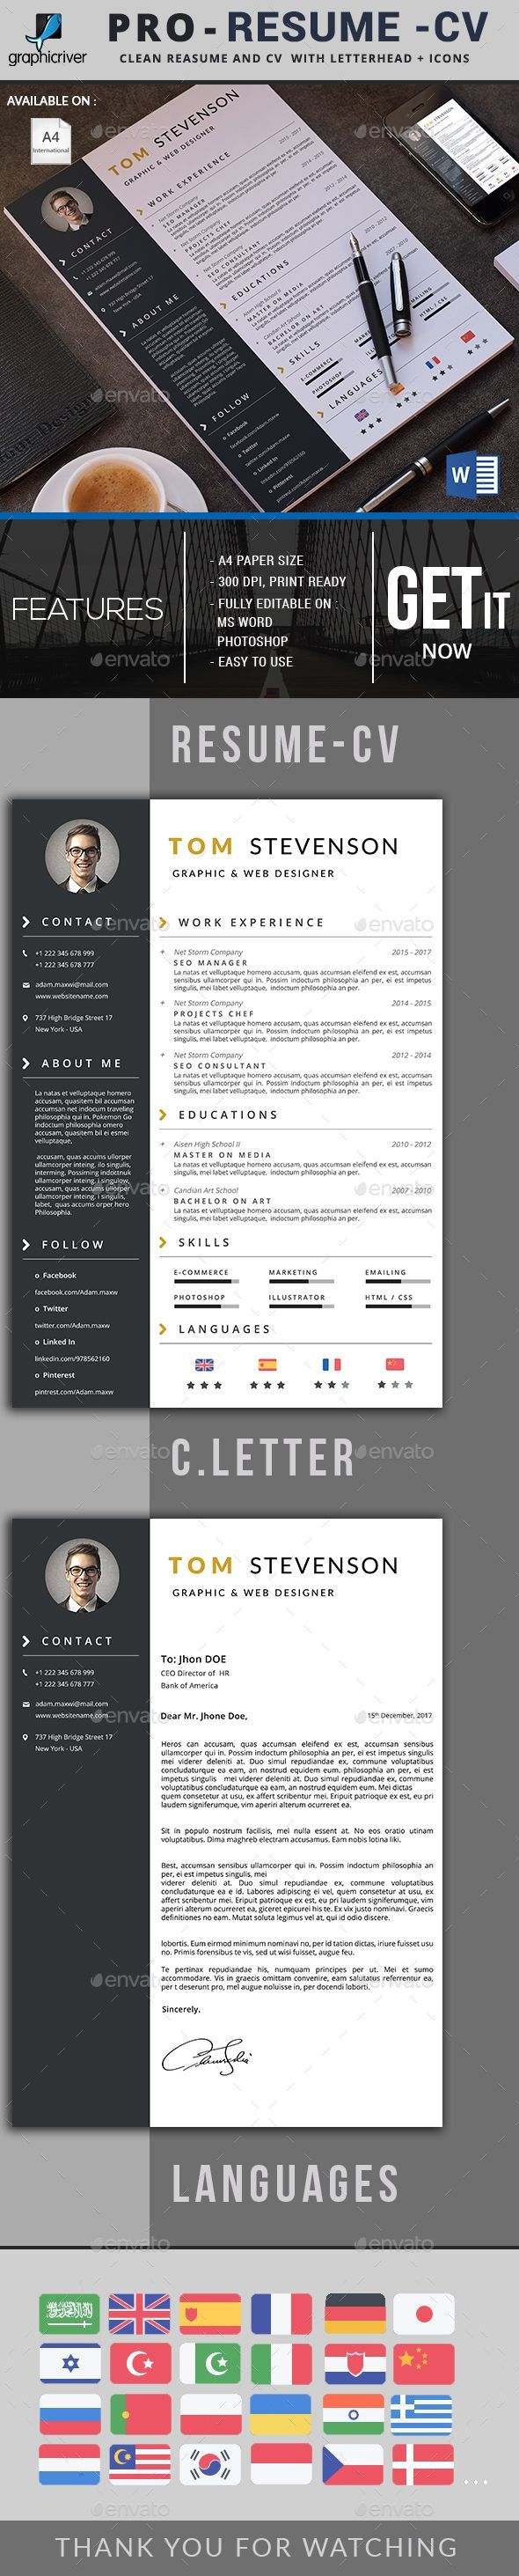 Employee Application Template%0A nurse cover letter examples